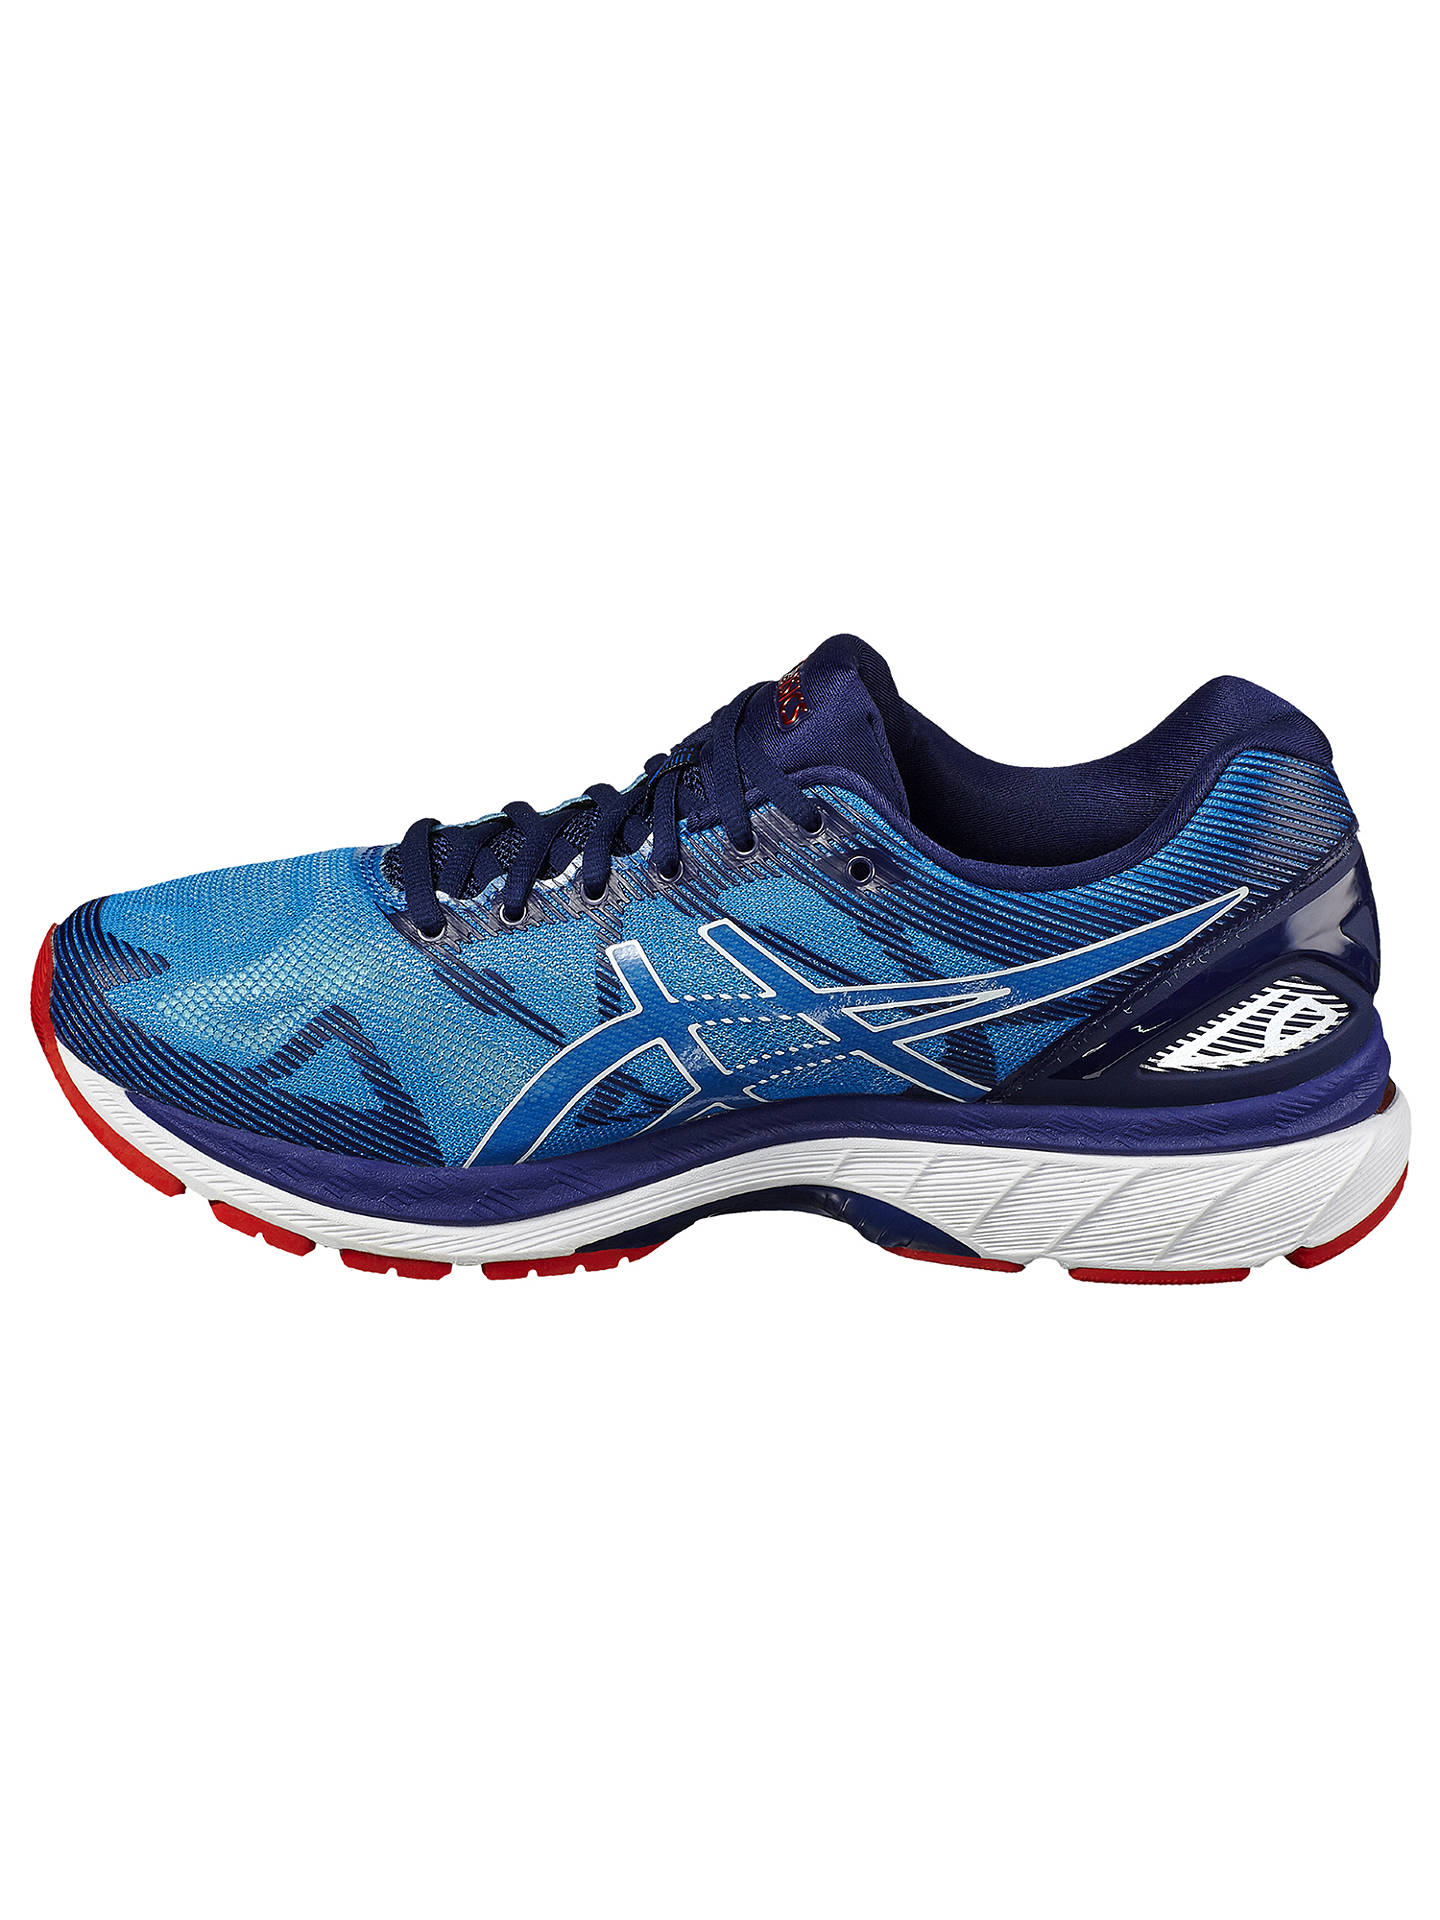 buy popular 832d6 b7fd4 Asics GEL-NIMBUS 19 Men's Running Shoes, Blue/White at John ...